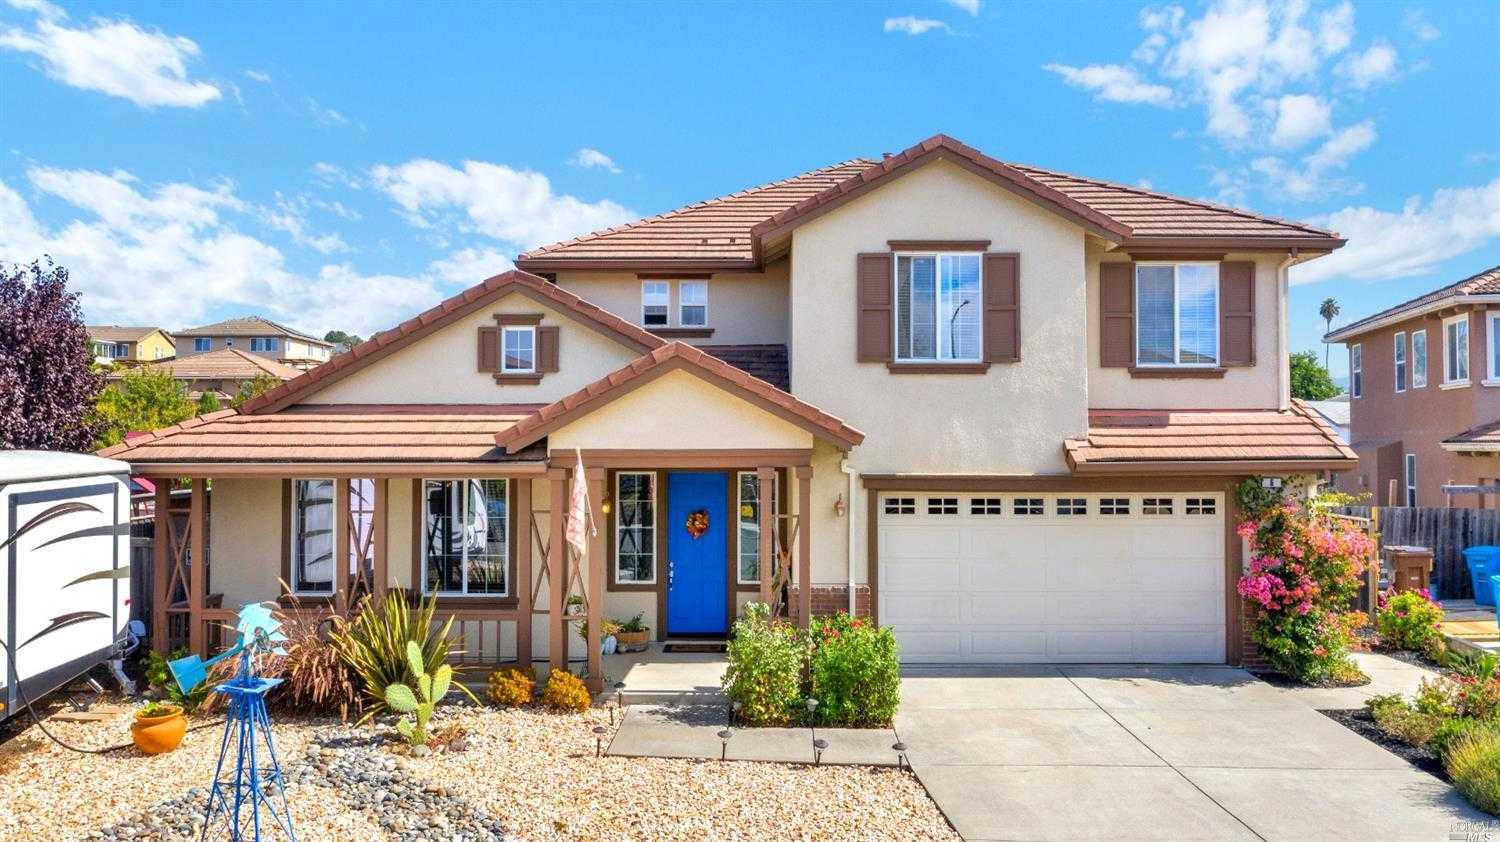 $709,000 - 4Br/3Ba -  for Sale in American Canyon